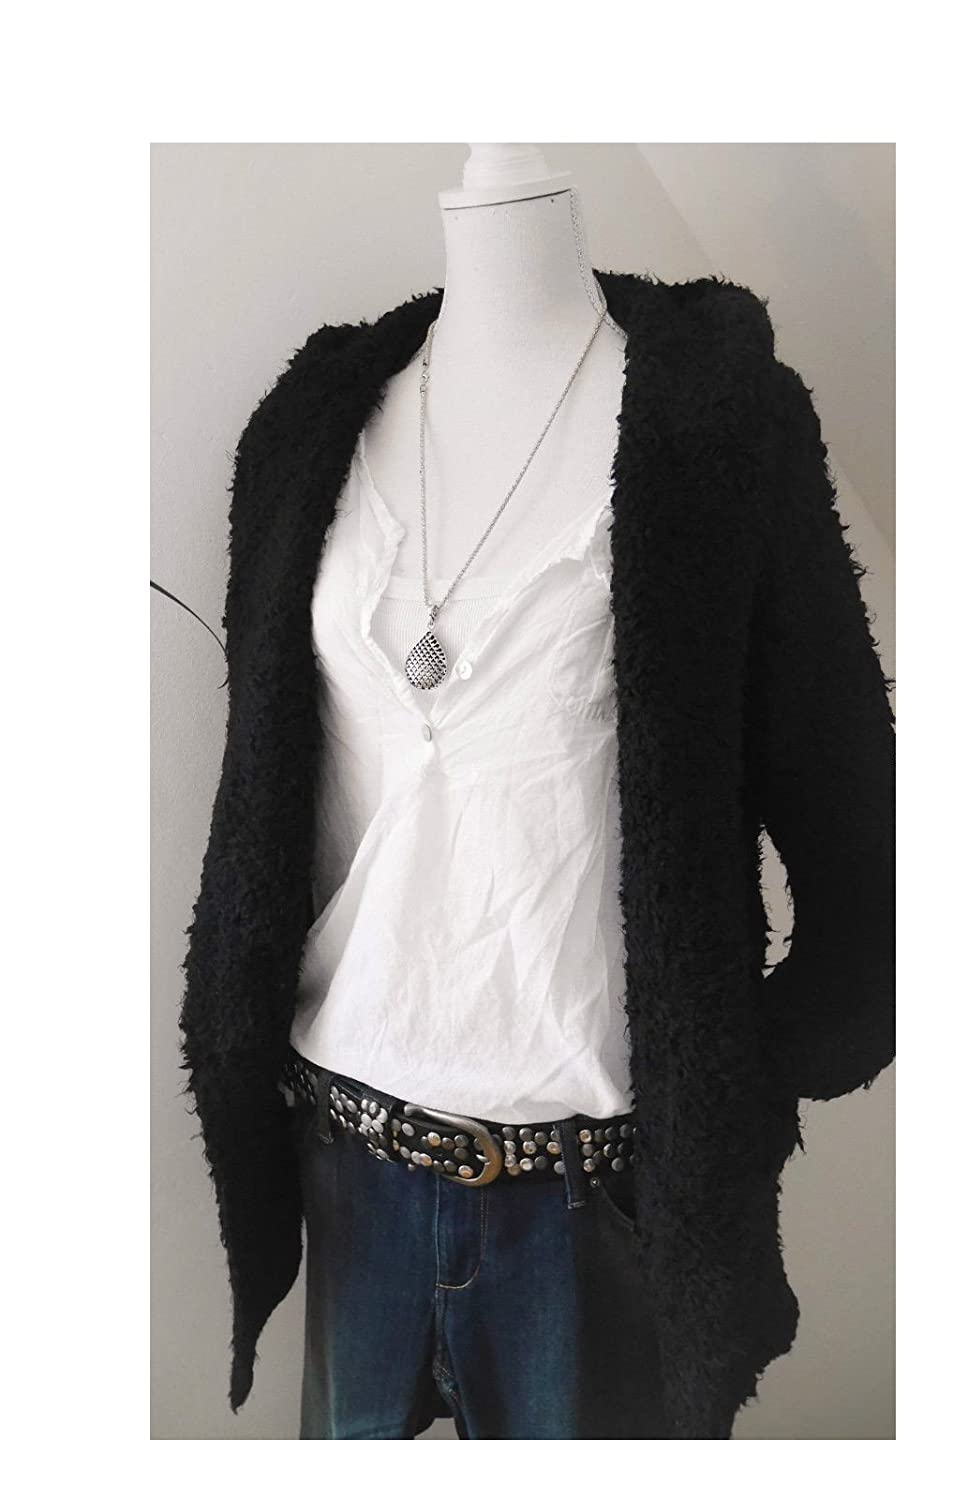 Fashion Trend Mode Long Cardigan Kuscheljacke Kapuze Strick Jacke Mantel schwarz black M L 40 42 44 (1439)